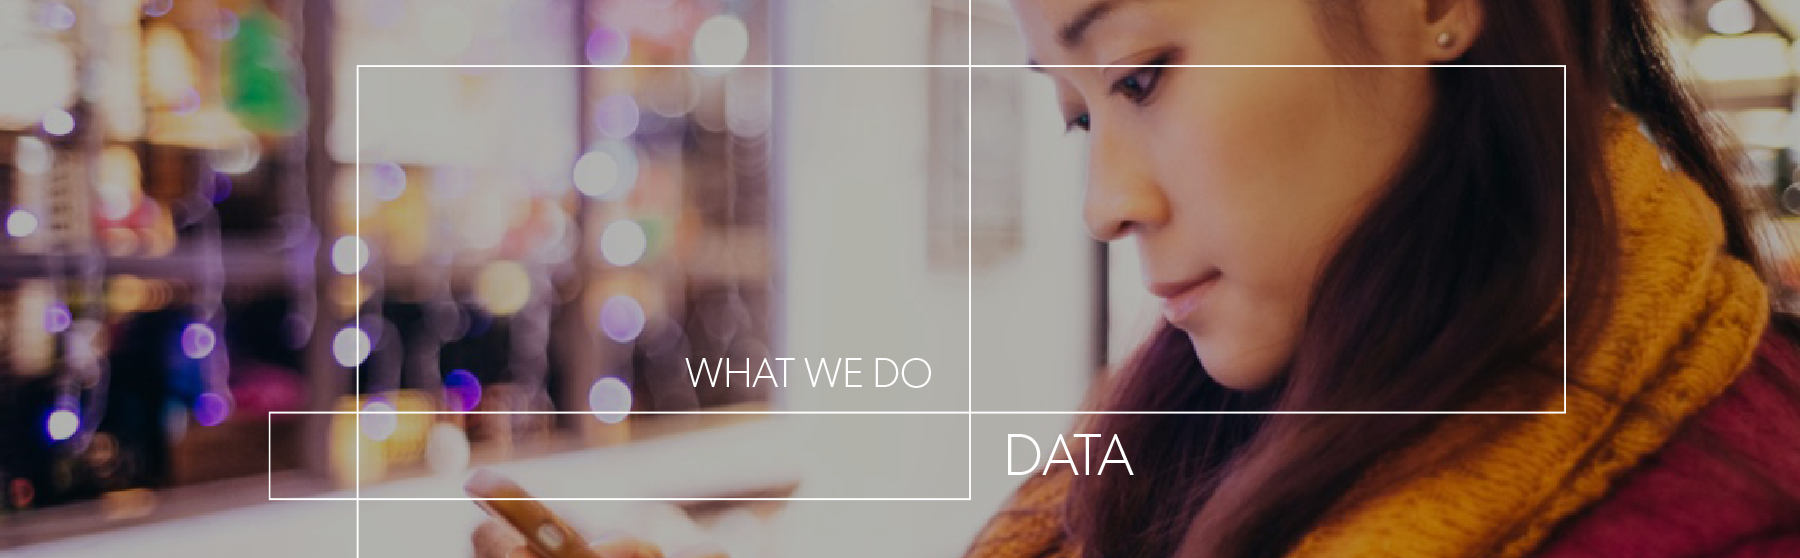 WHAT WE DO DATA